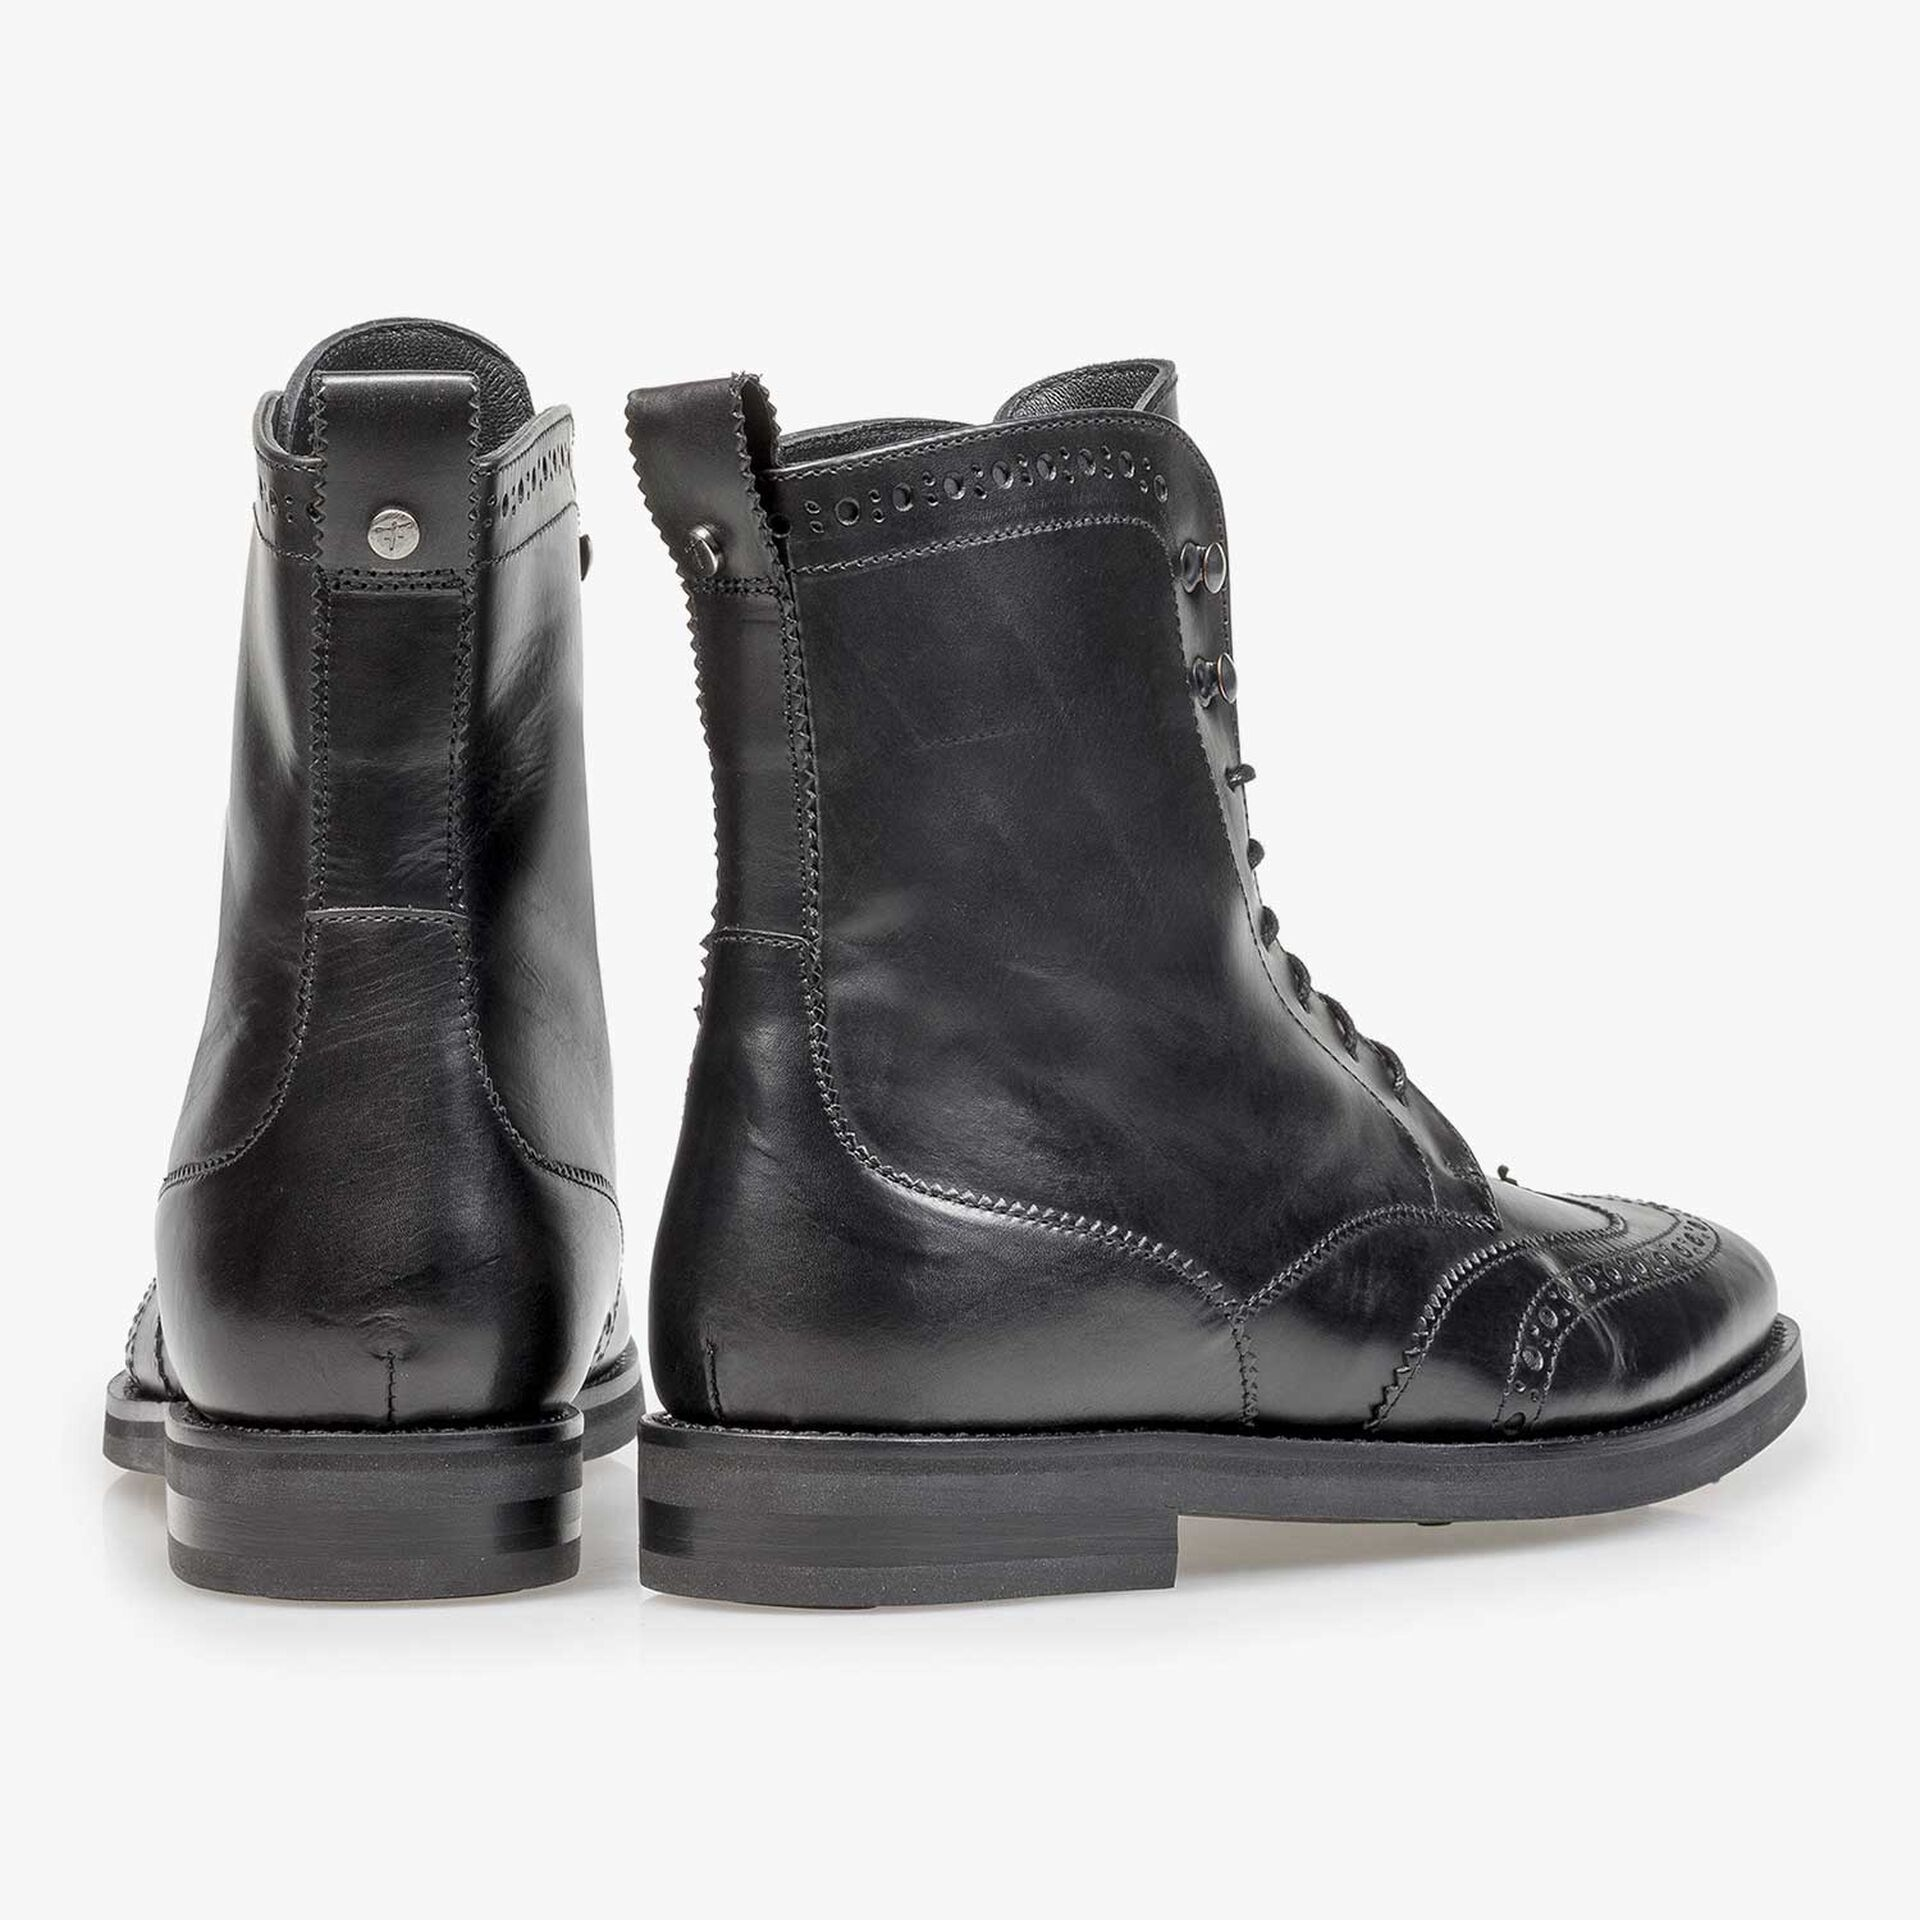 Black calf leather biker lace boot